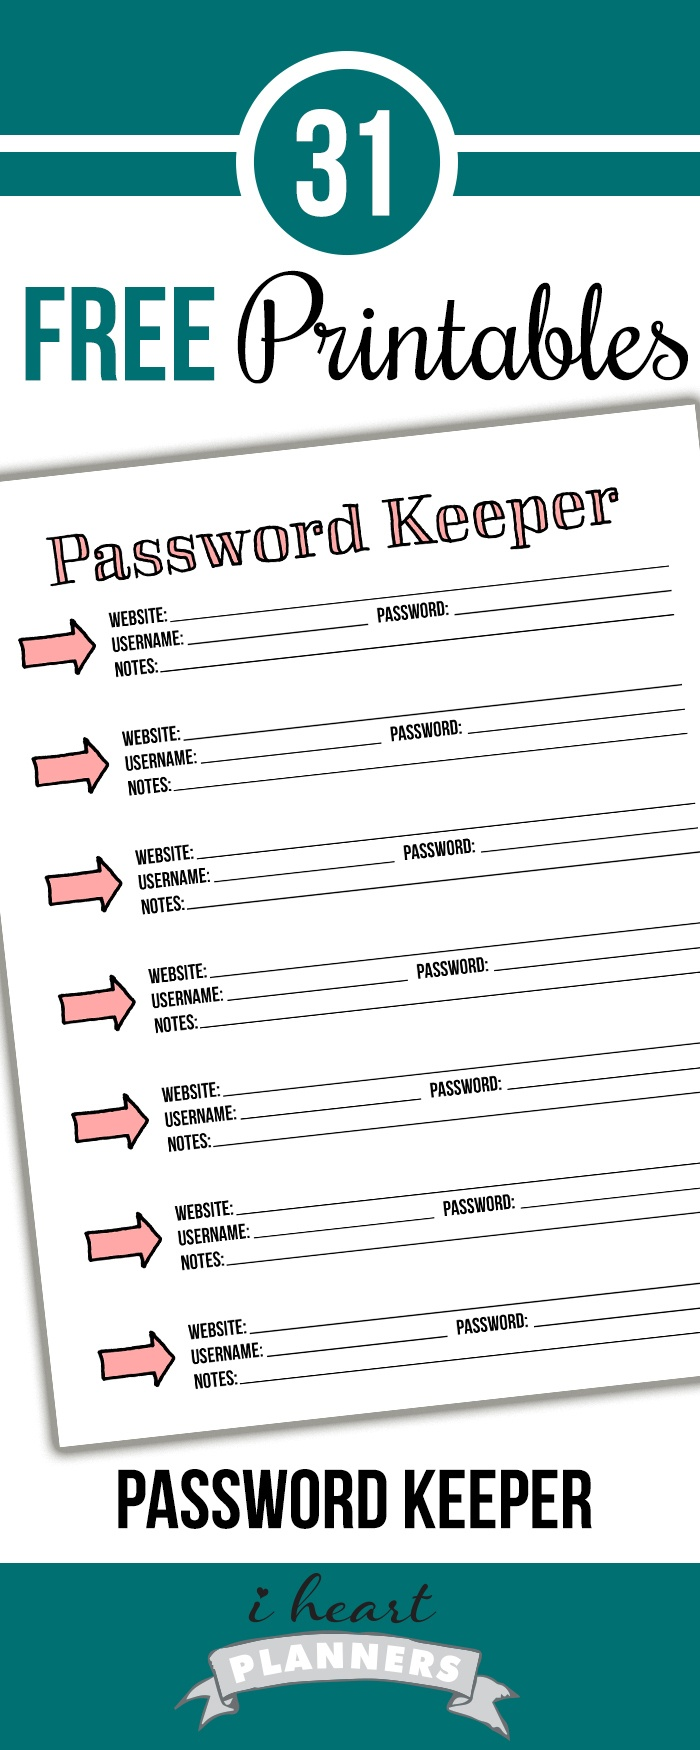 Day 6: Password Keeper - I Heart Planners - Free Printable Password Organizer